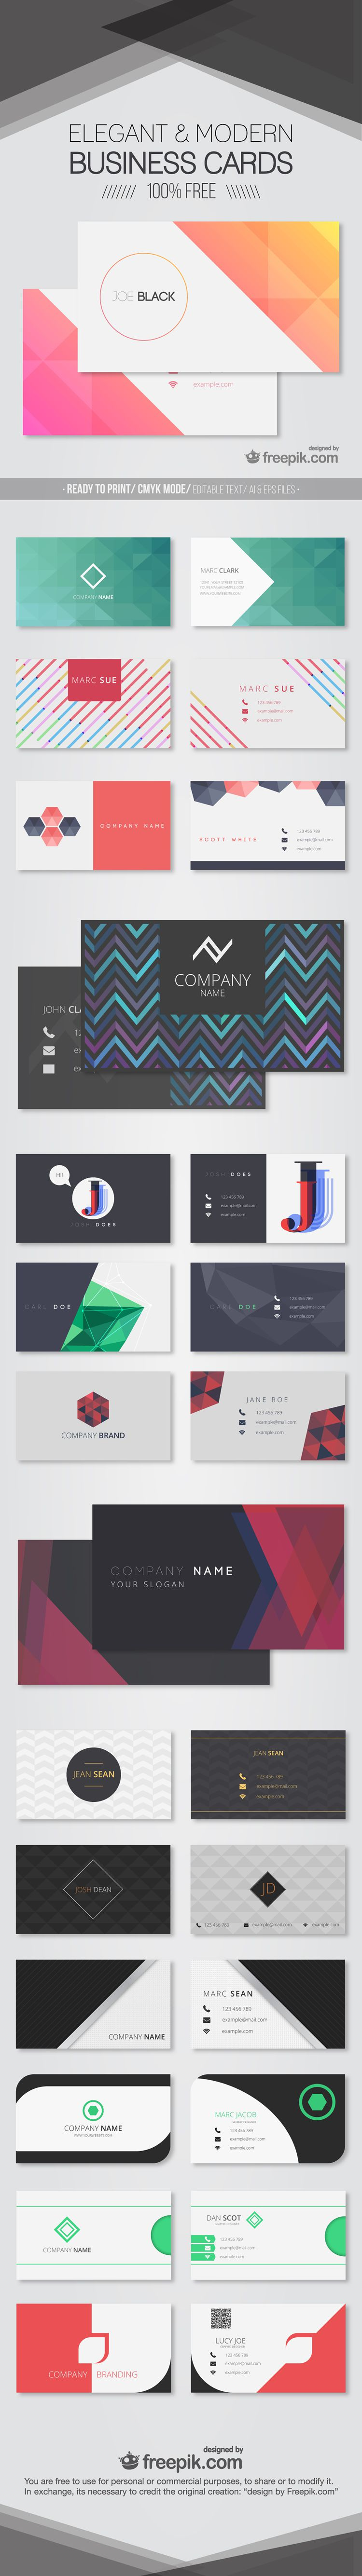 30 free modern business card templates